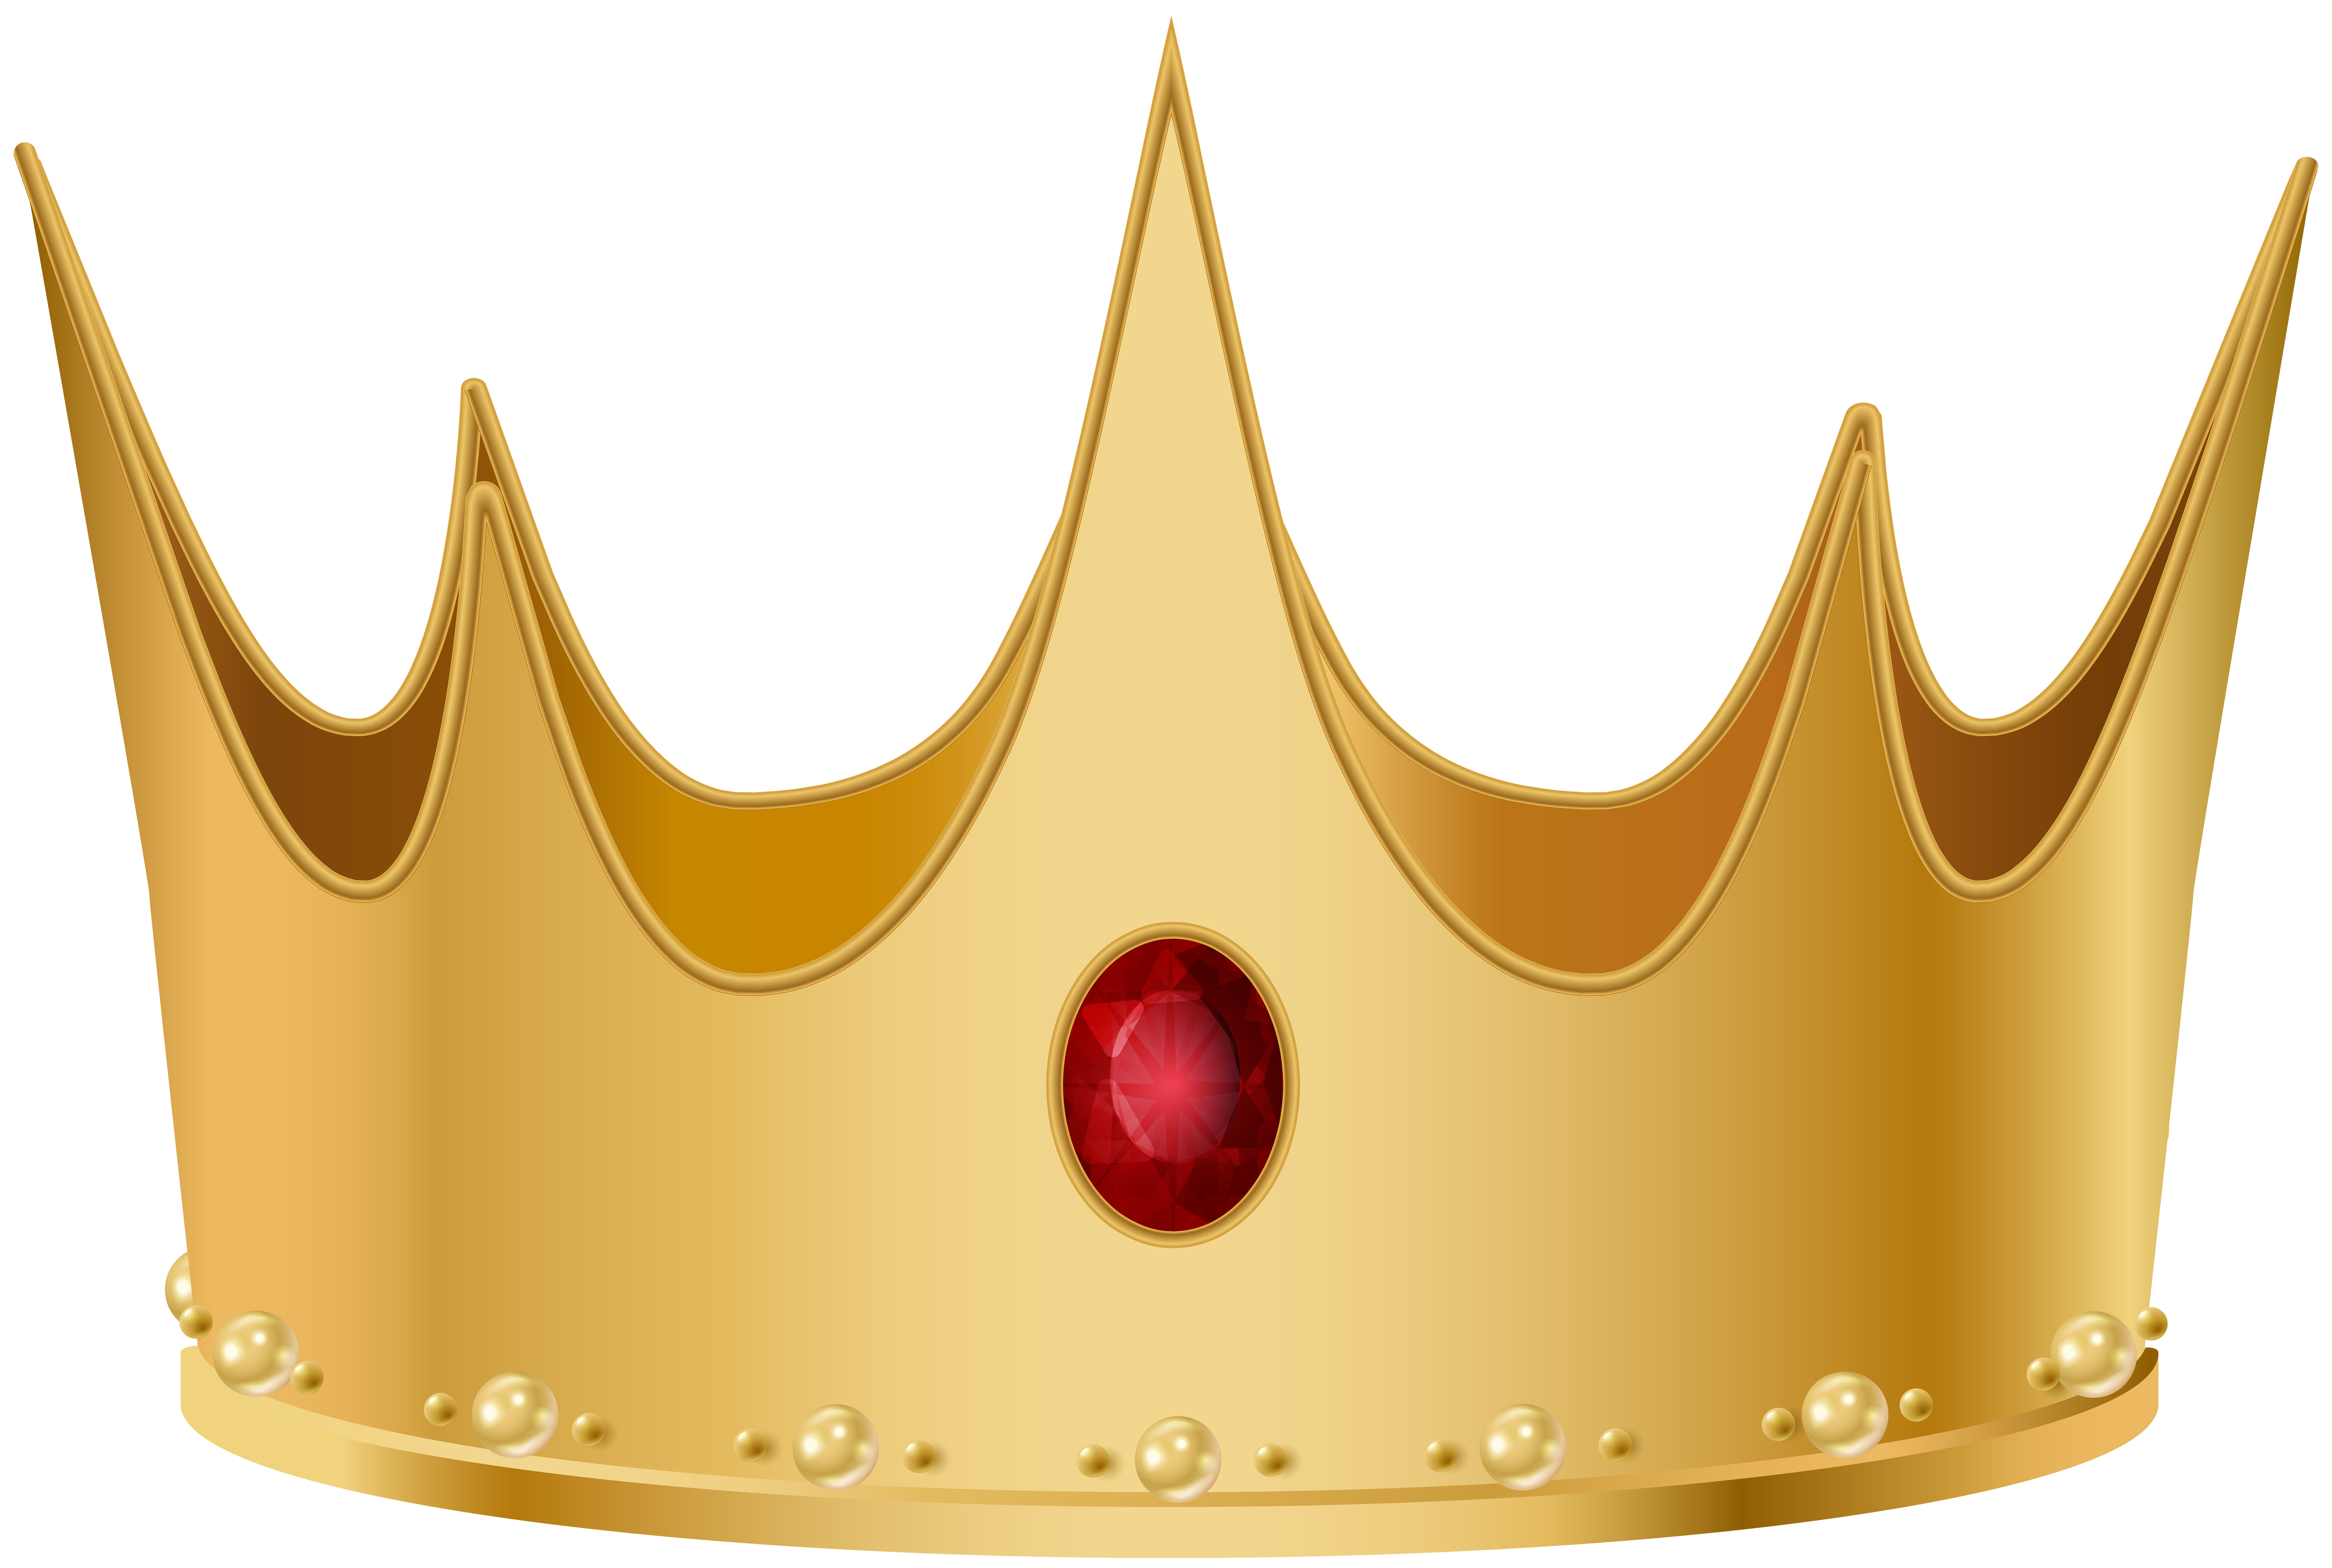 Shareware clipart crown png royalty free download golden crown clipart shareware - image #20 png royalty free download